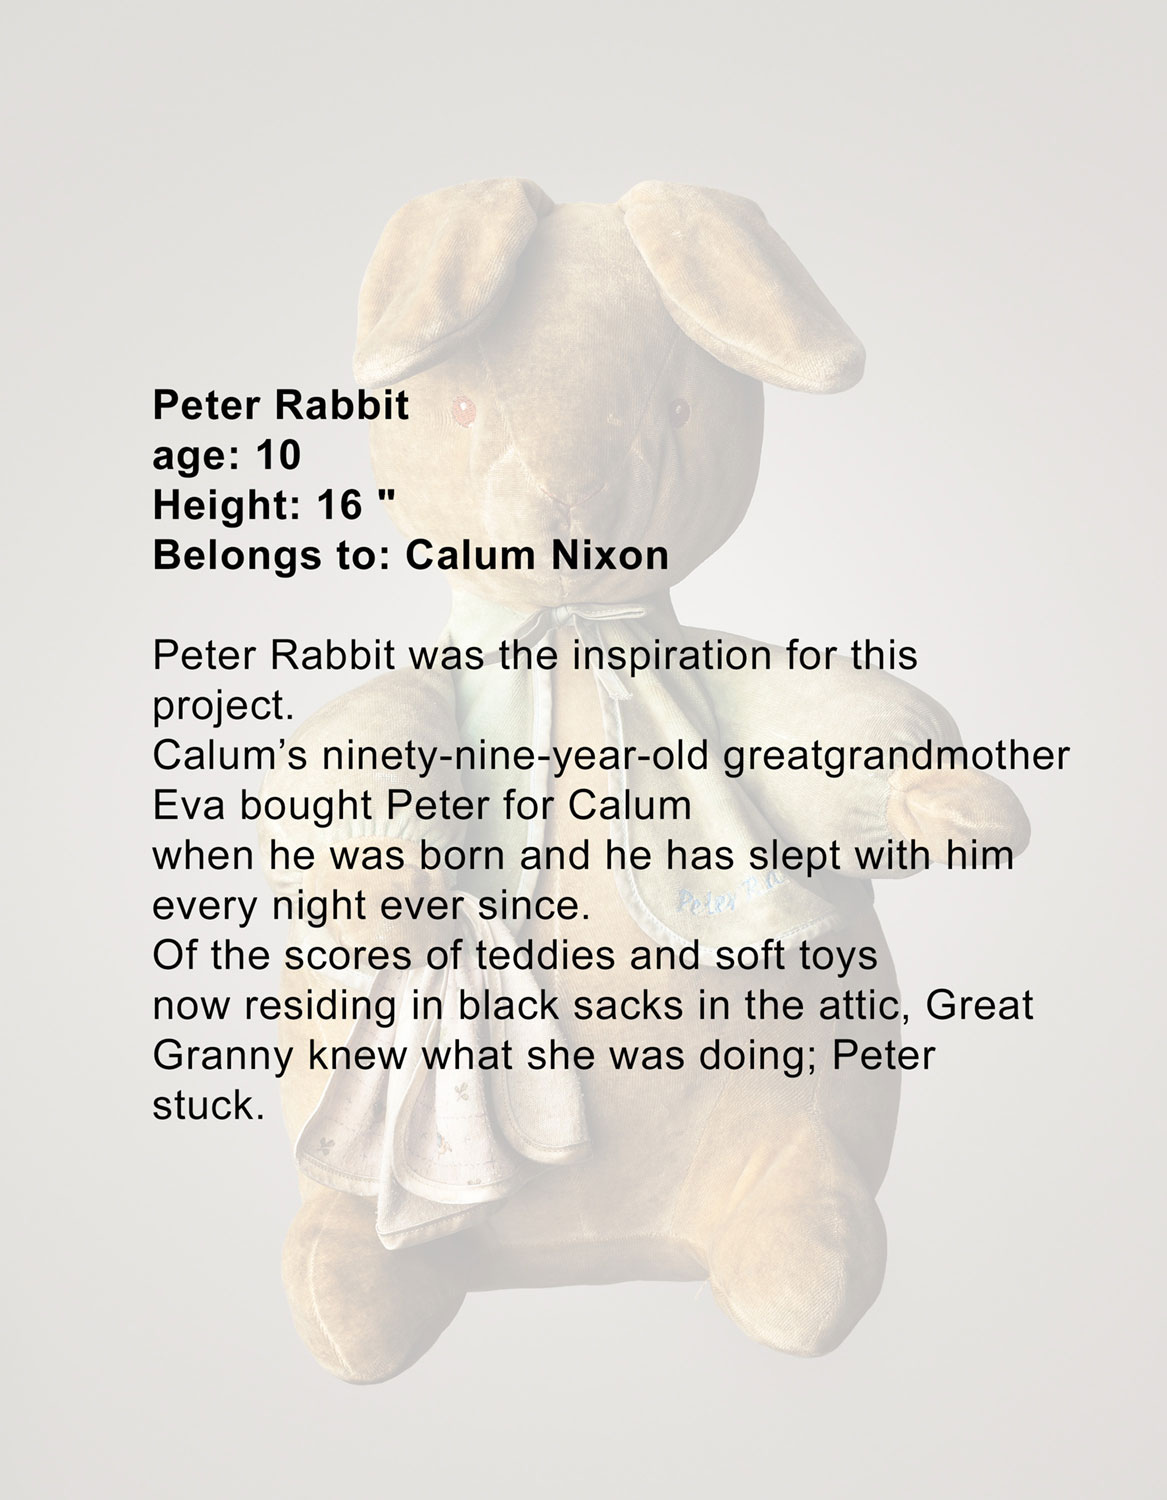 Calum-Nixon---Peter-Rabbit-text.jpg